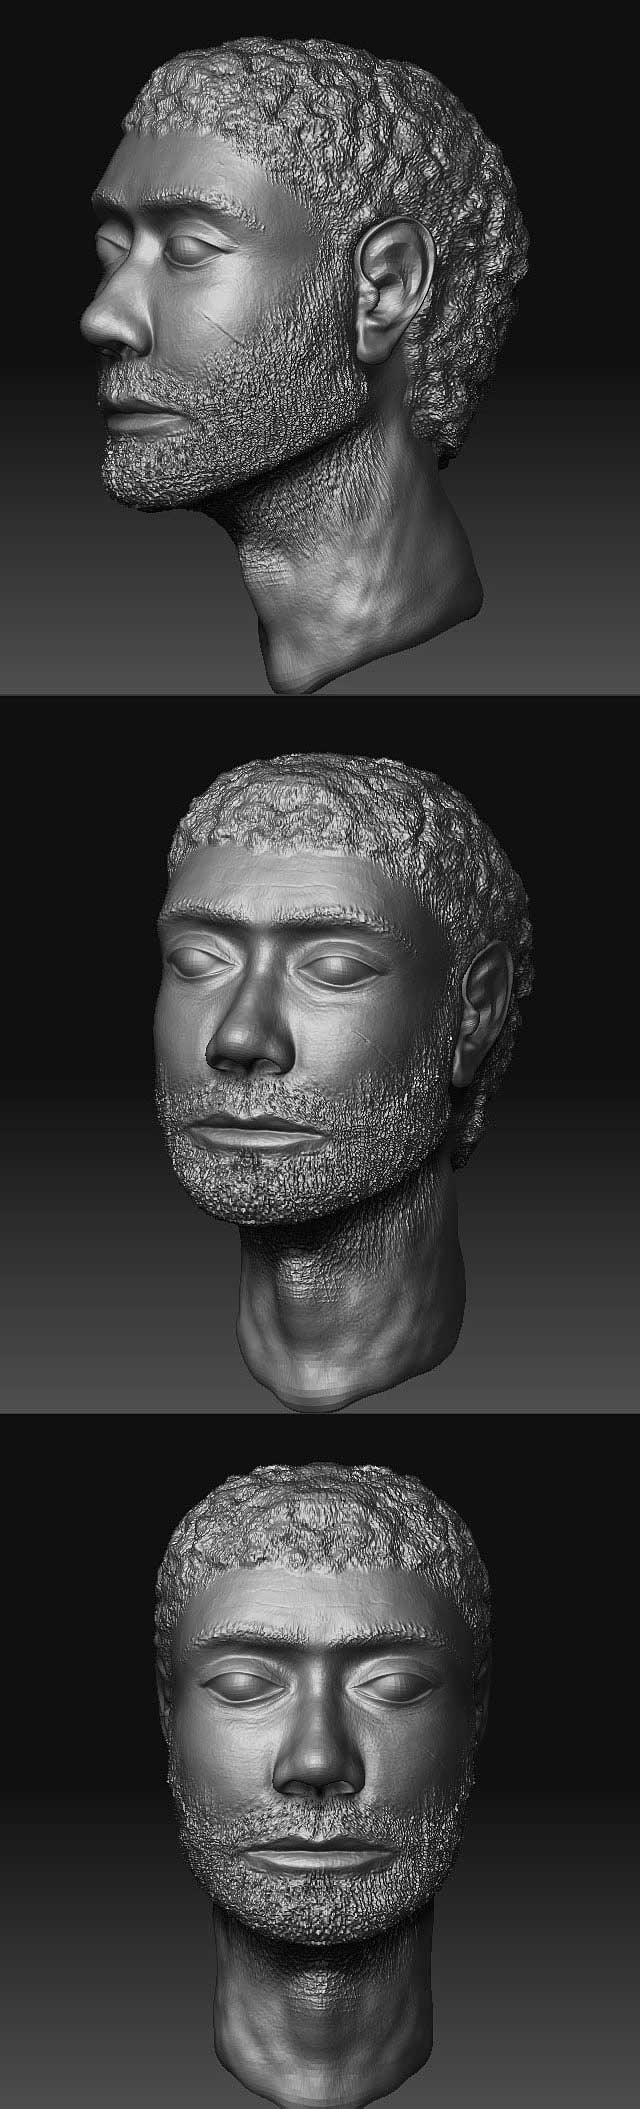 head_sculpt_zbrush1.jpg